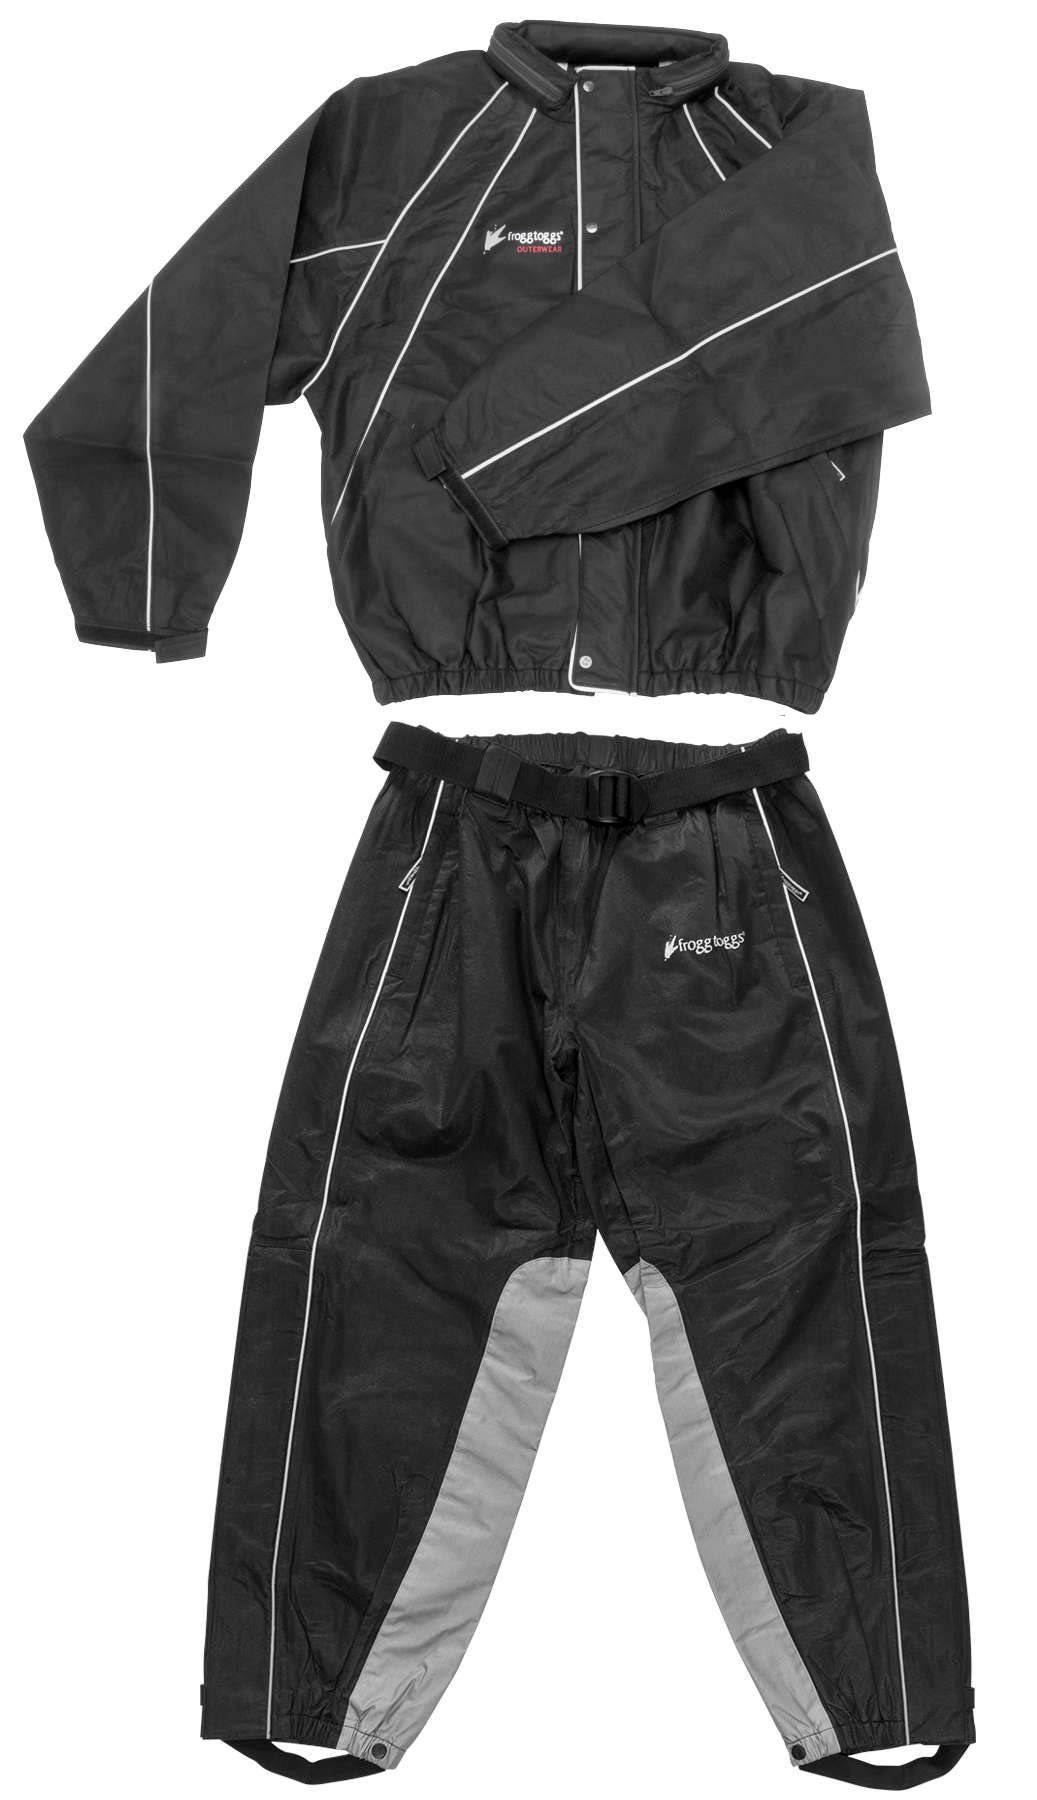 Frogg Toggs Hogg Togg Men's Street Motorcycle Rainsuit - Black/Large by Frogg Toggs